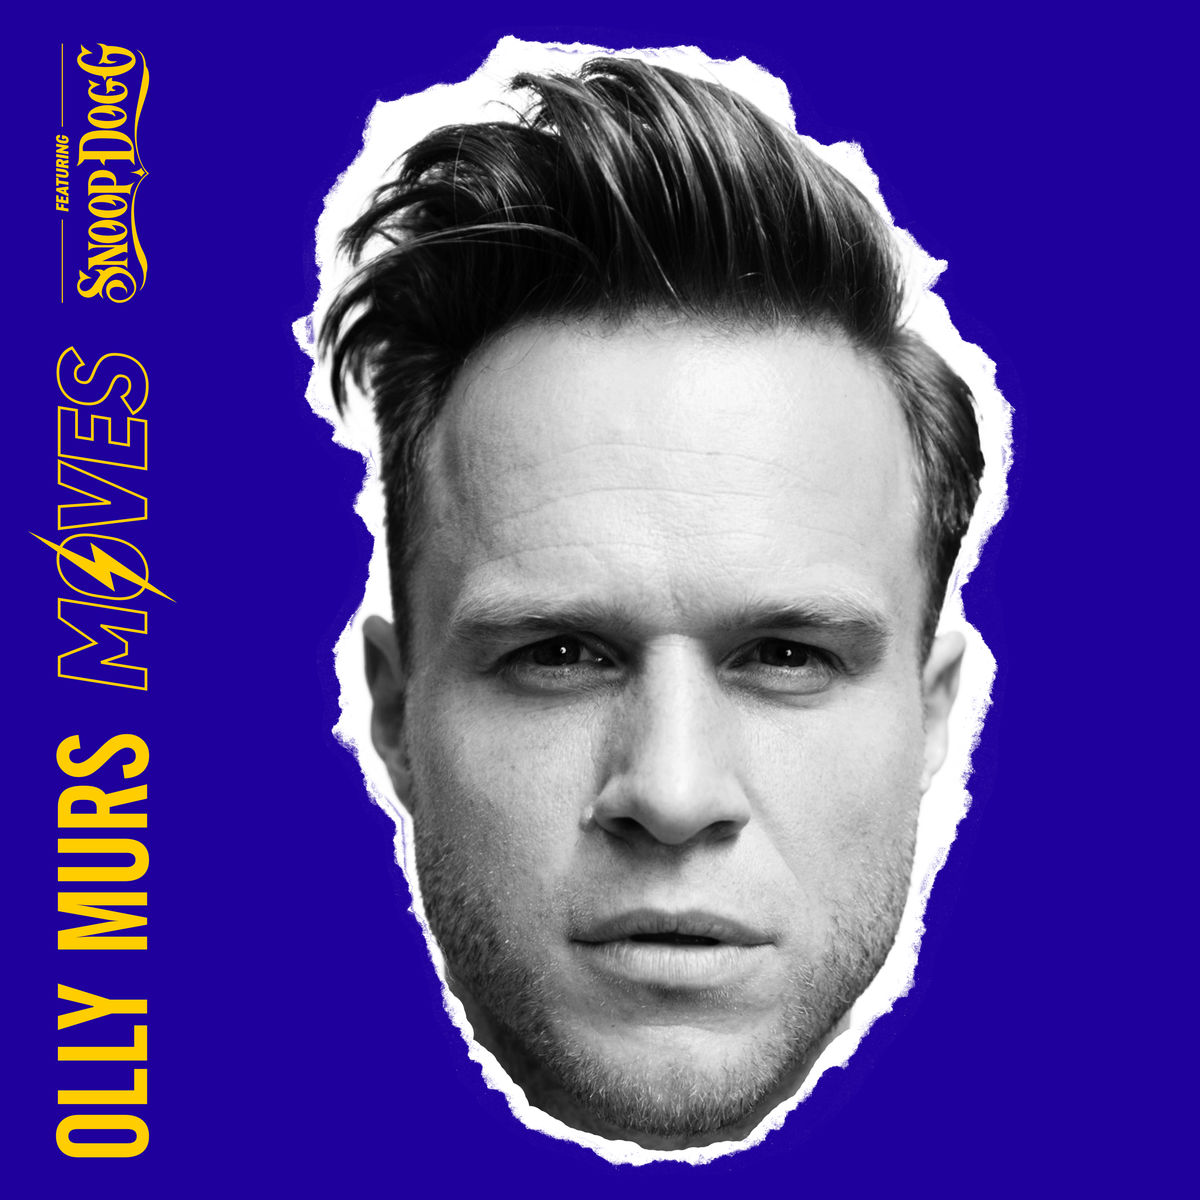 ultratop be - Olly Murs feat  Snoop Dogg - Moves